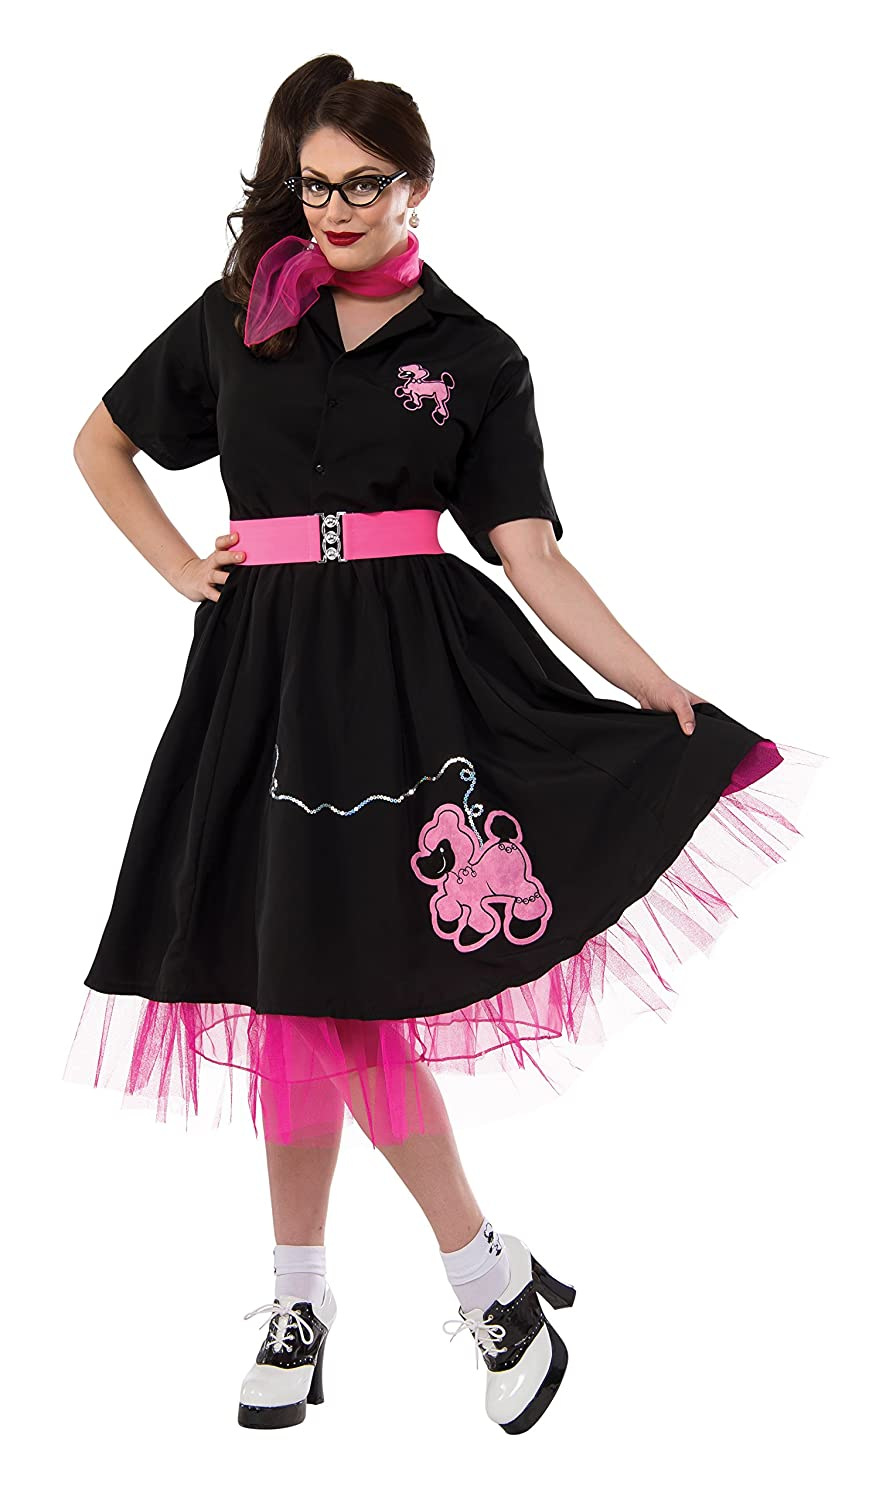 poodle skirts poodle skirt costumes patterns